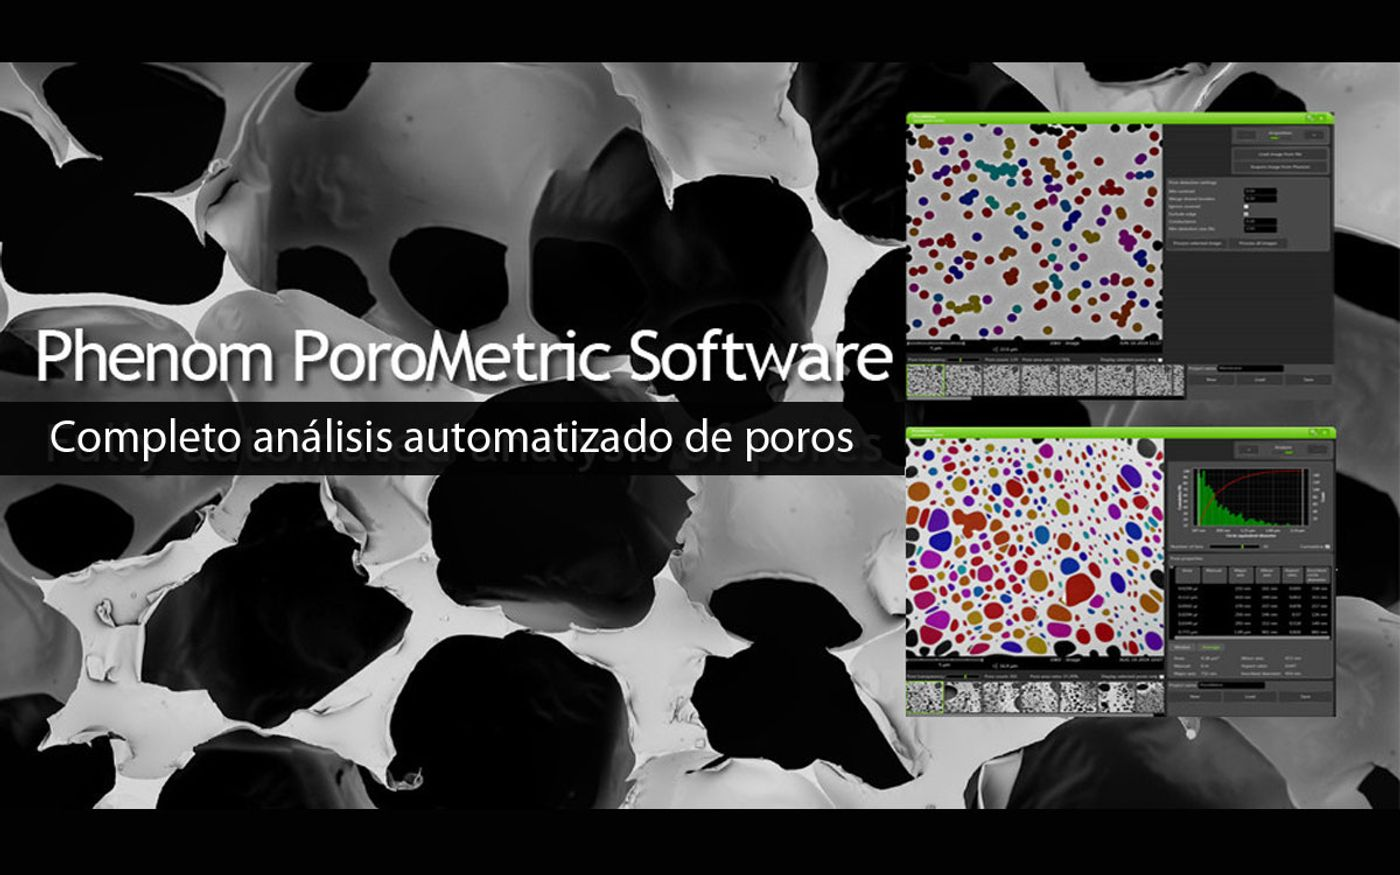 Nuevo Software Porometric de PhenomWorld